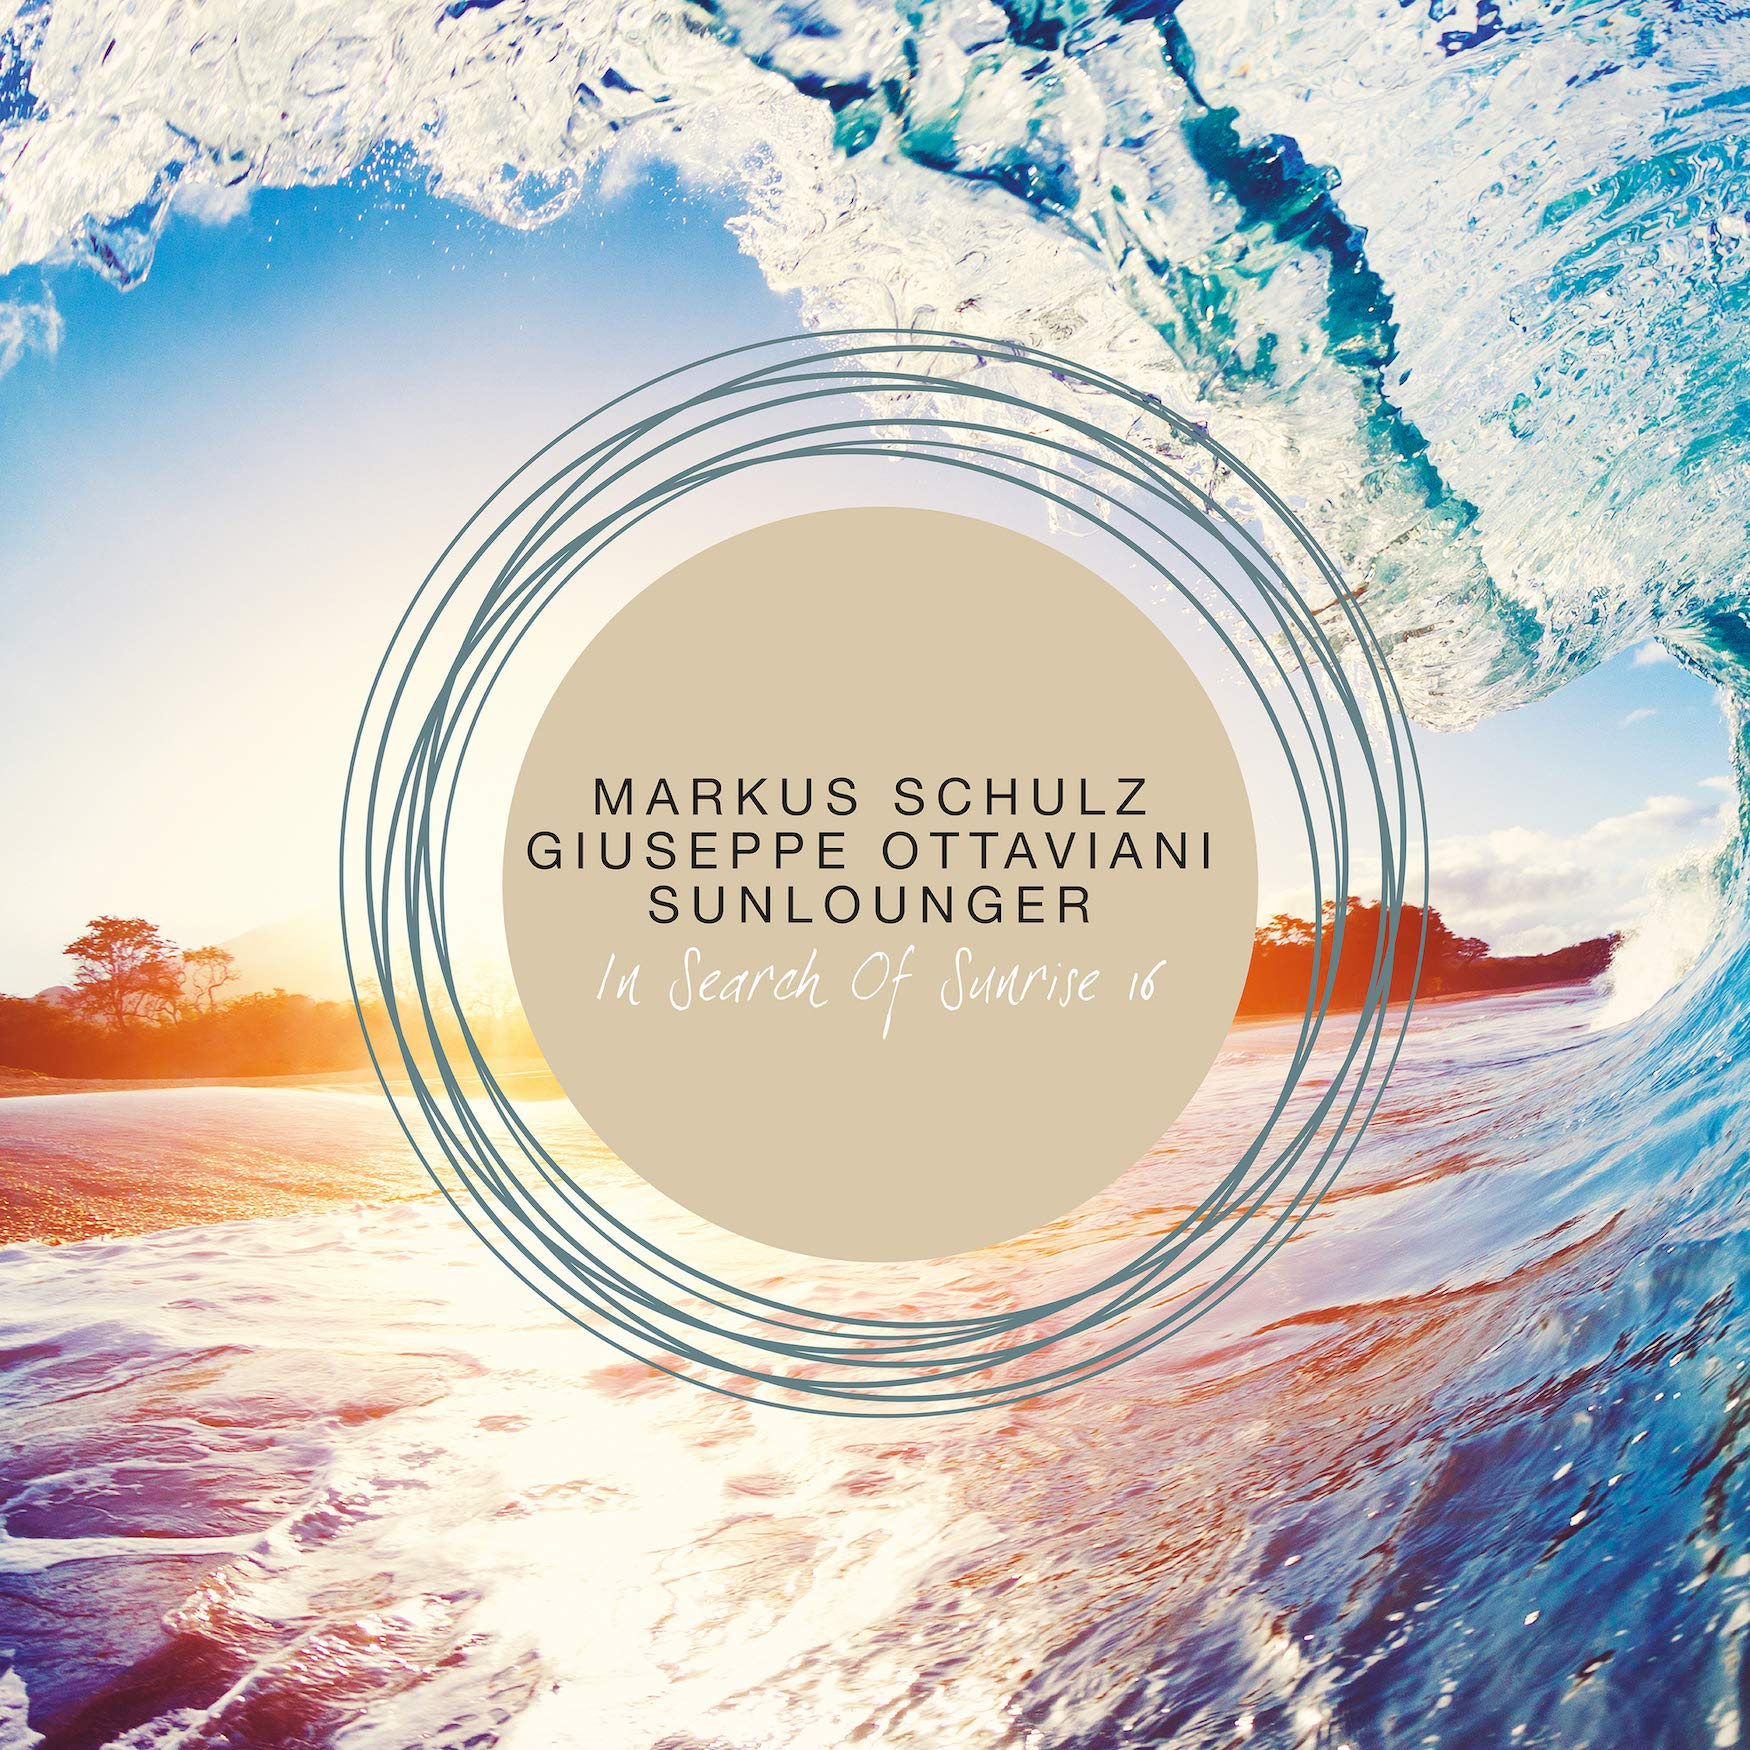 VA - In Search of Sunrise 16 Markus Schulz, Giuseppe Ottaviani, Sunlounger (2020) [FLAC] Download